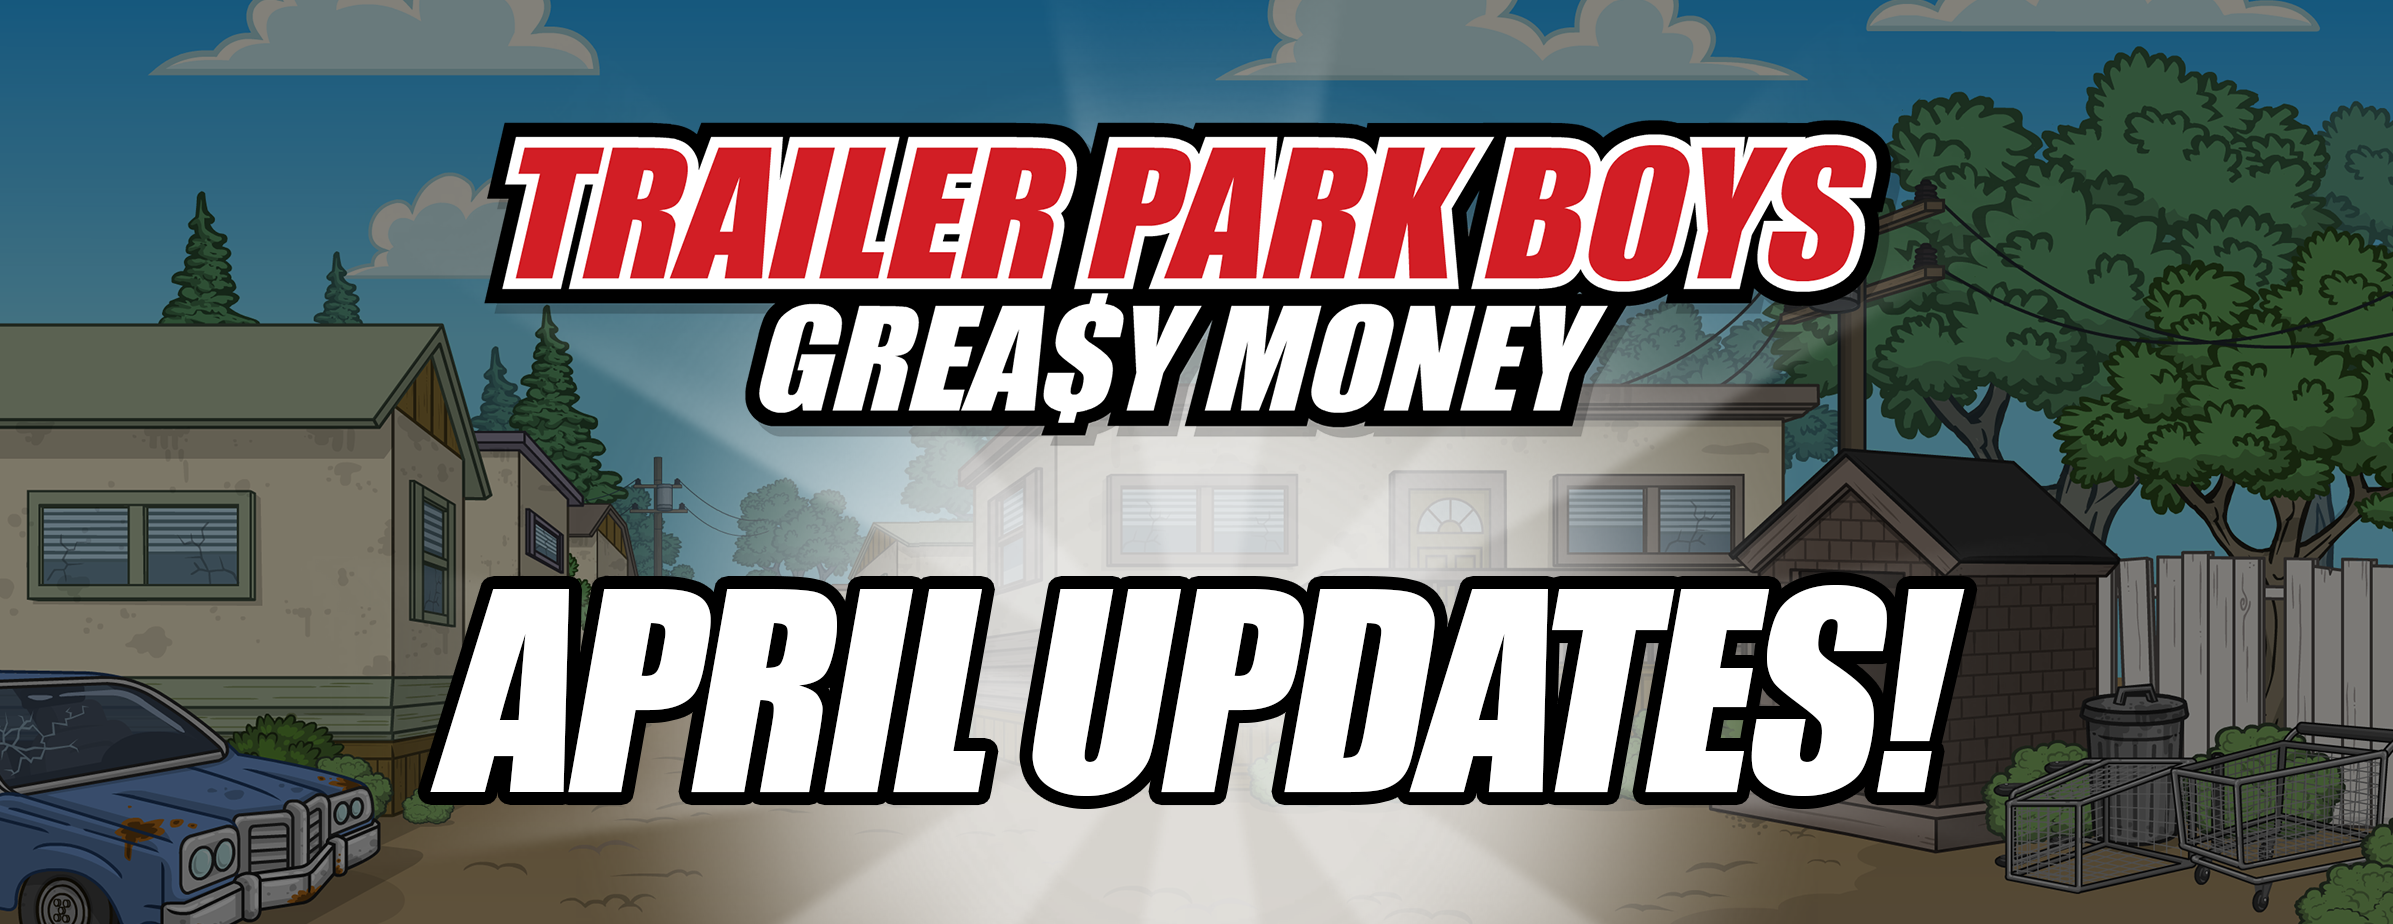 Trailer Park Boys: Greasy April Events!